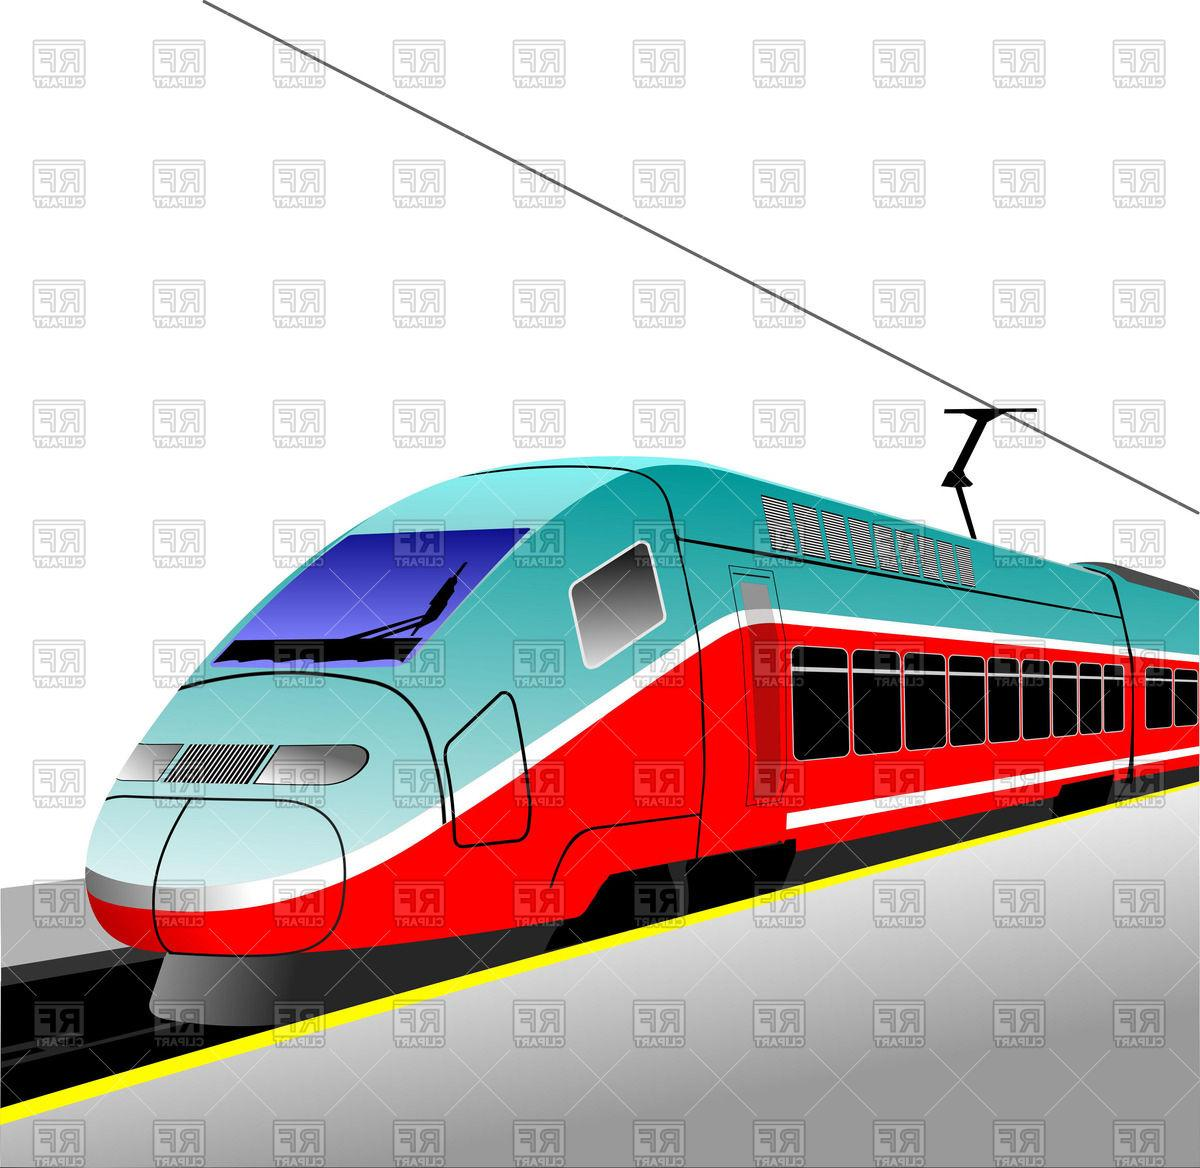 Modern train clipart jpg free stock Best Free Modern Train Clip Art Image » Free Vector Art ... jpg free stock